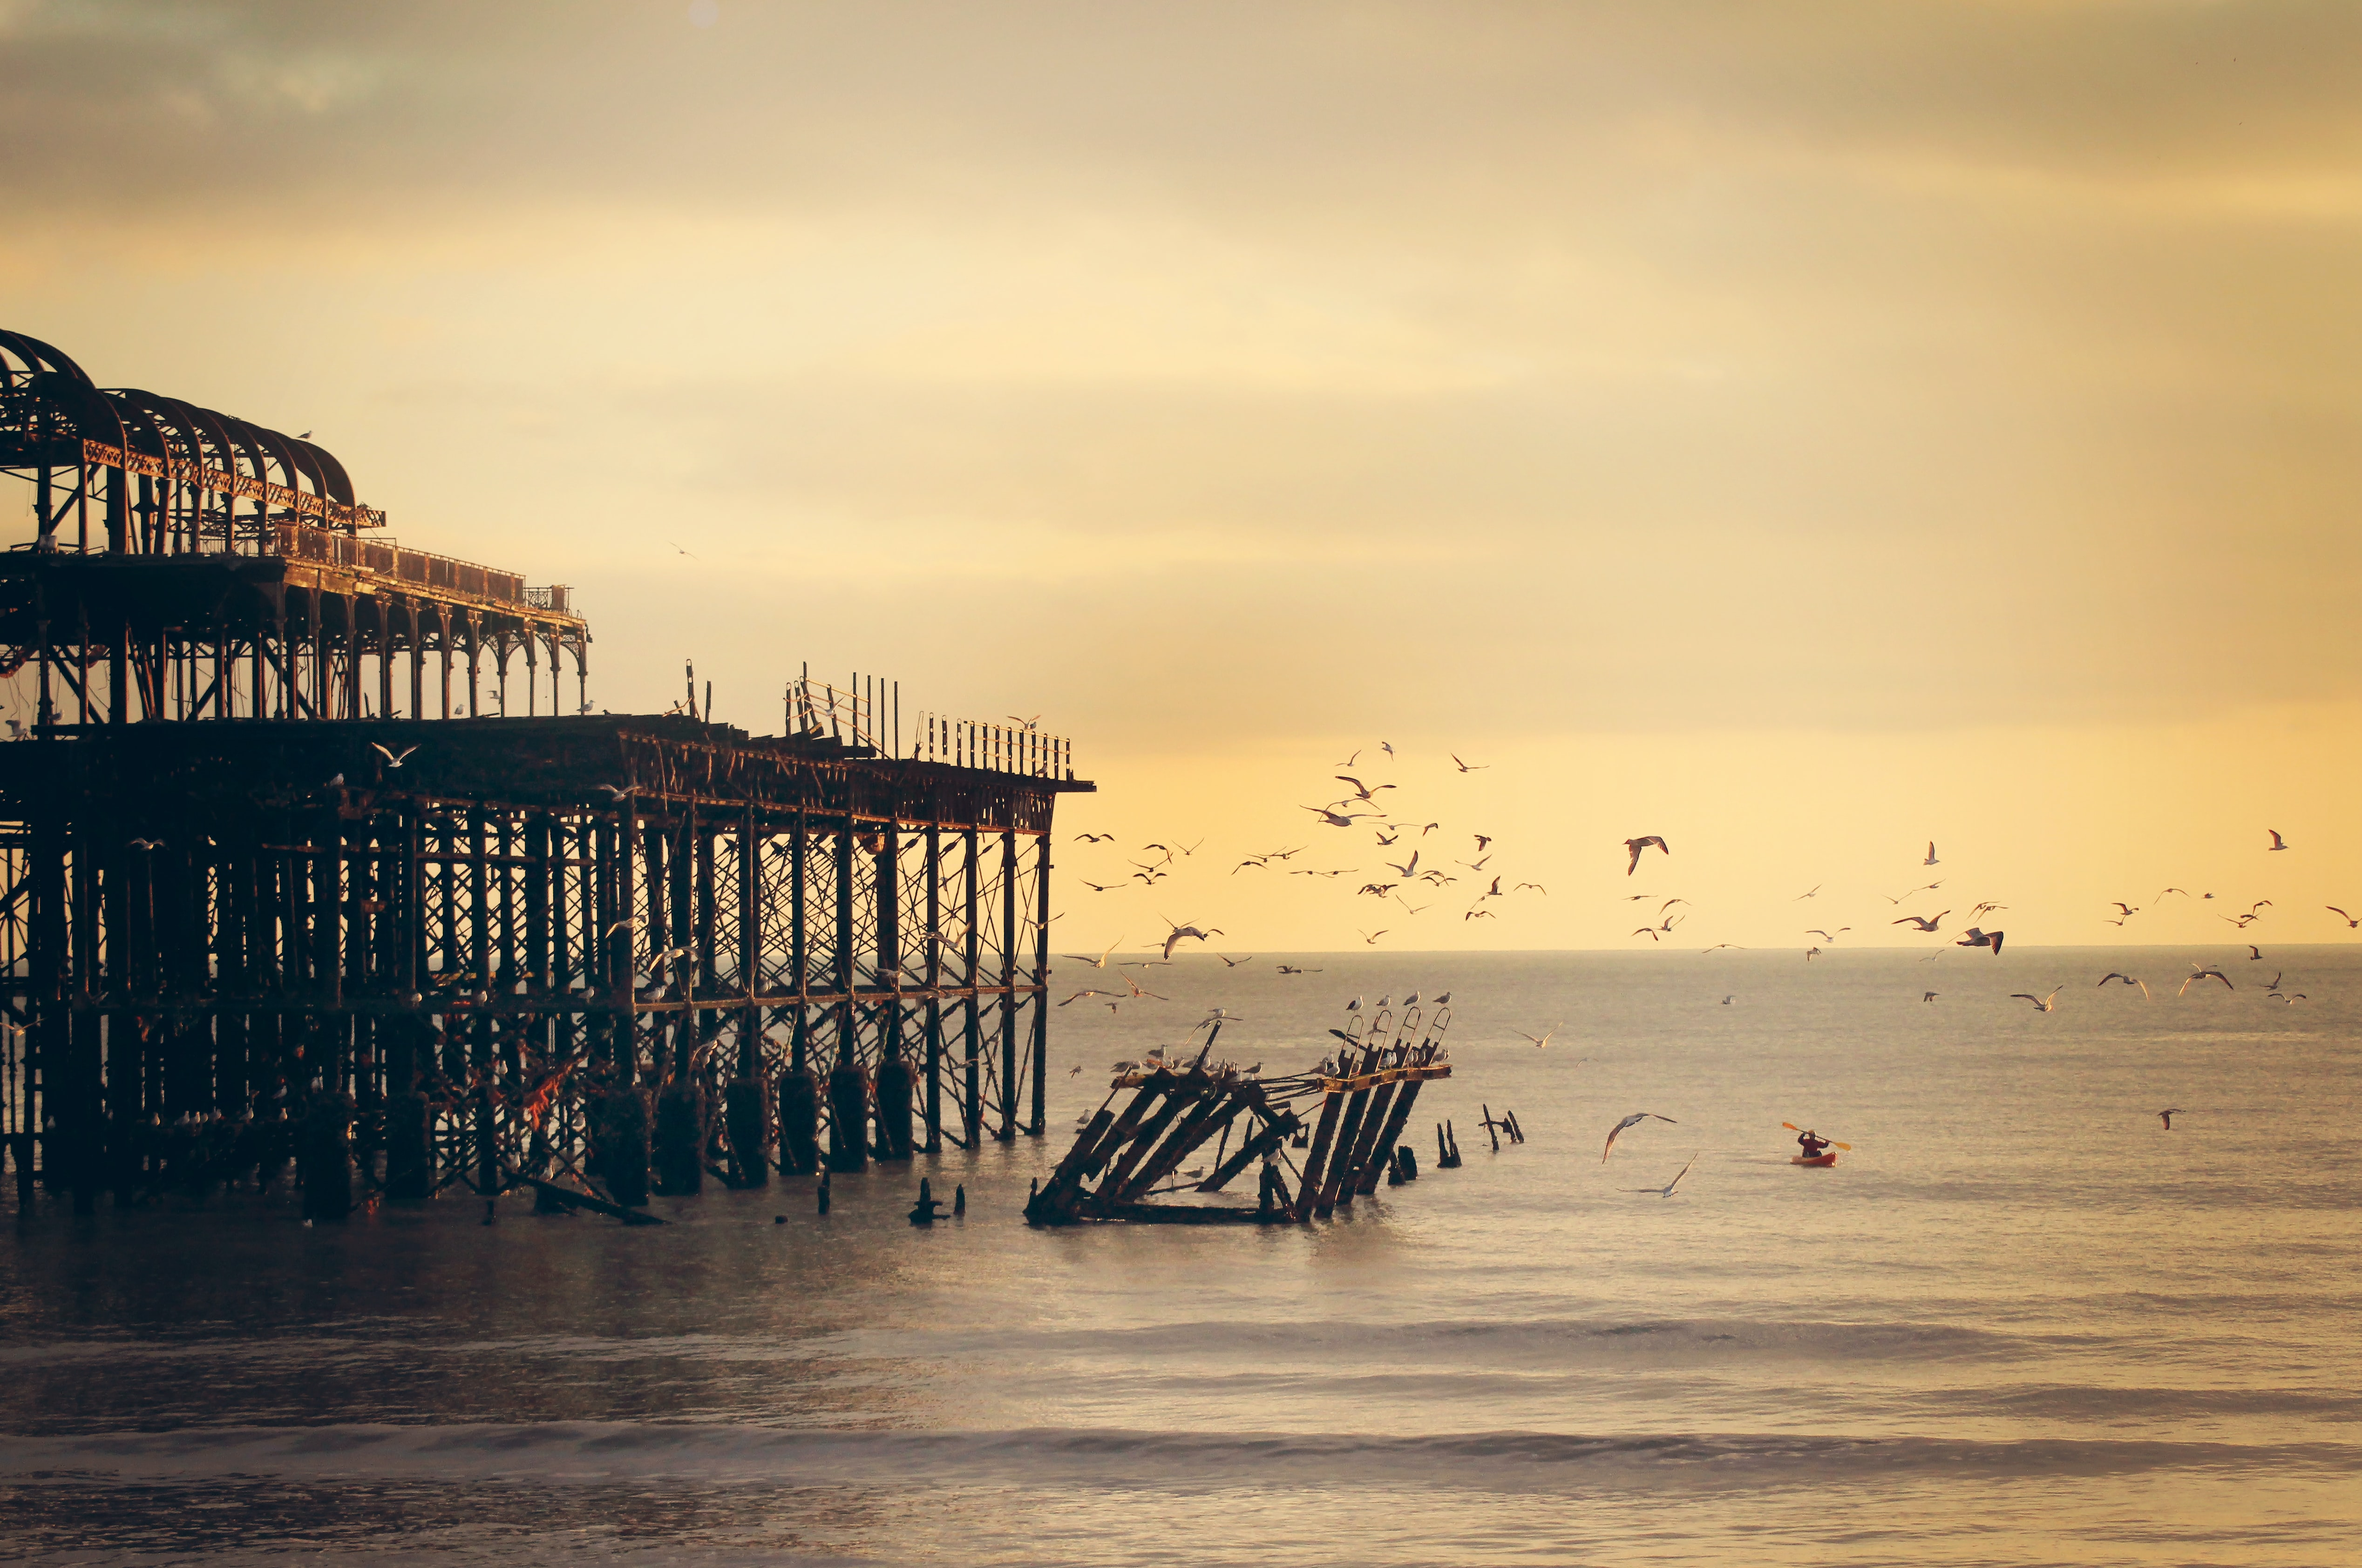 An evening shot with a golden sunset showing a group of seagulls flying around West Pier in Brighton